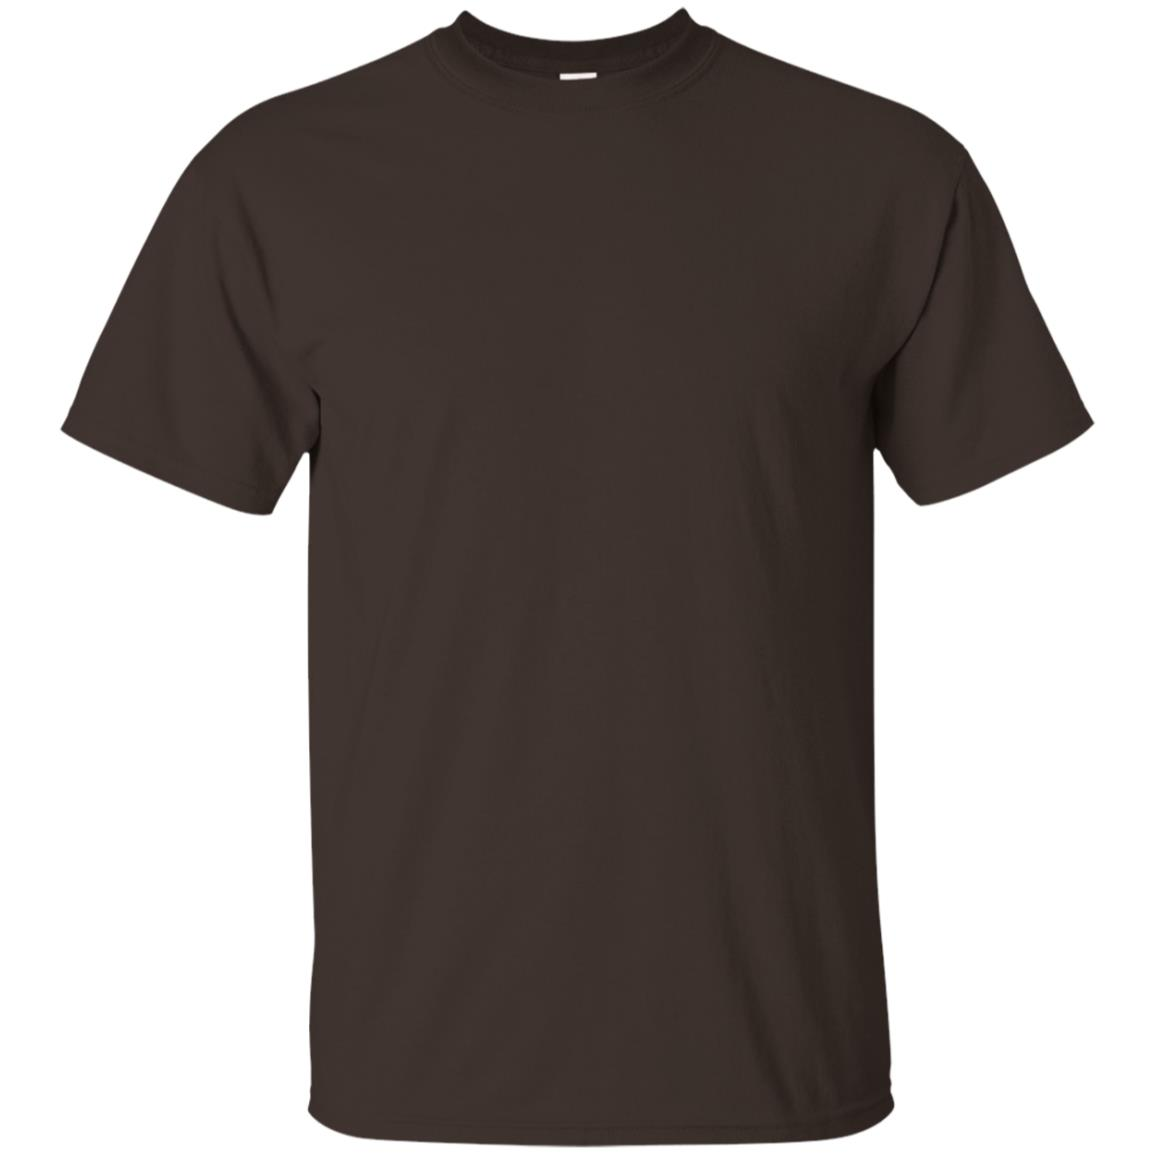 Have You Hugged A Vet Today Veterans Day Service Unisex Short Sleeve